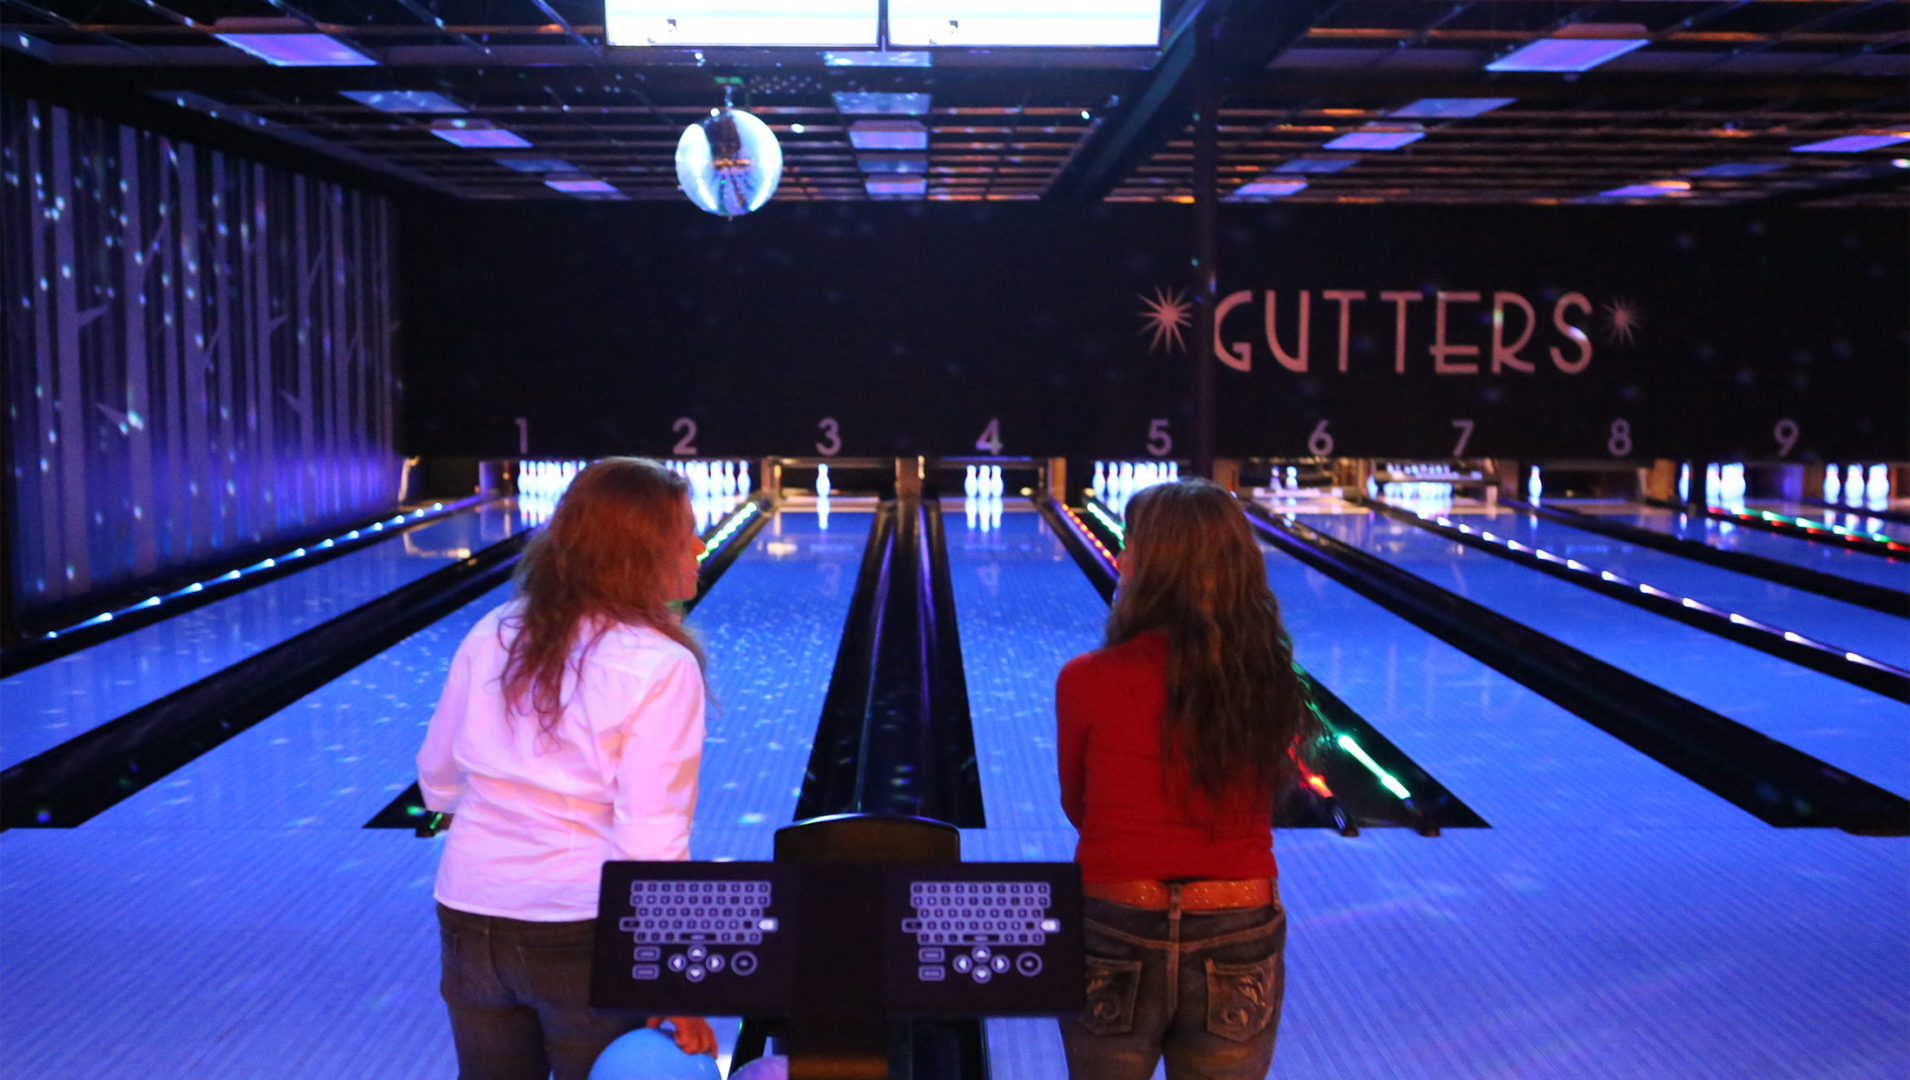 Home Taos Gutters Bowling Alley